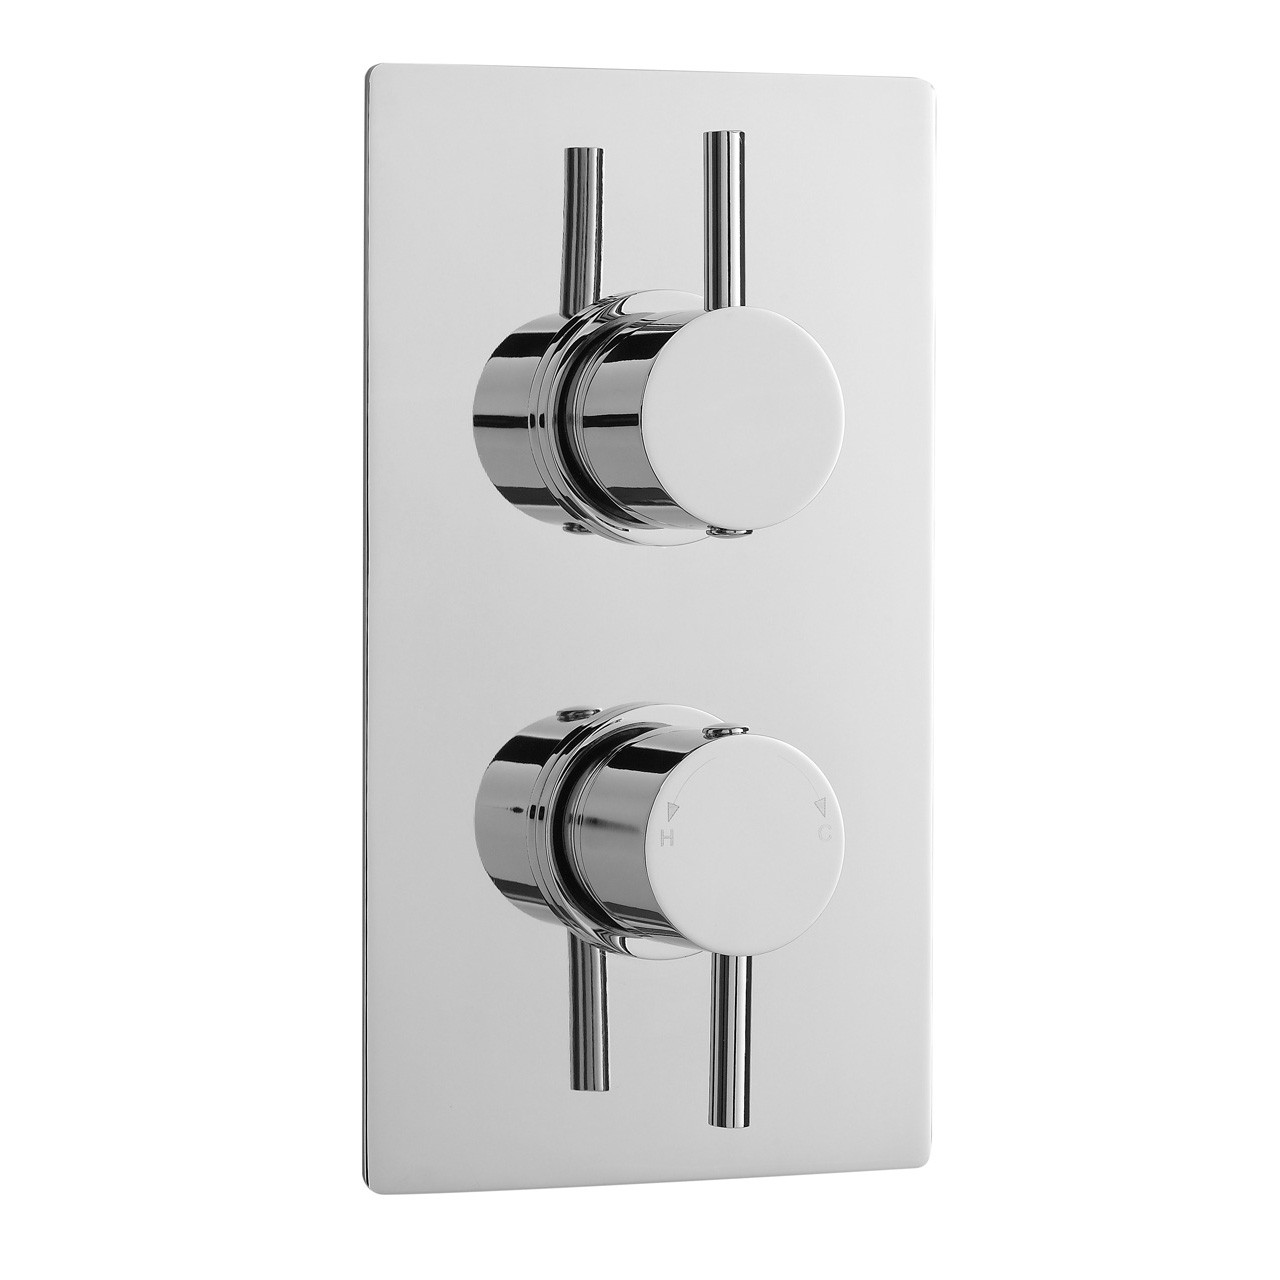 Ultra Twin Concealed Thermostatic Shower Valve - QUEV51